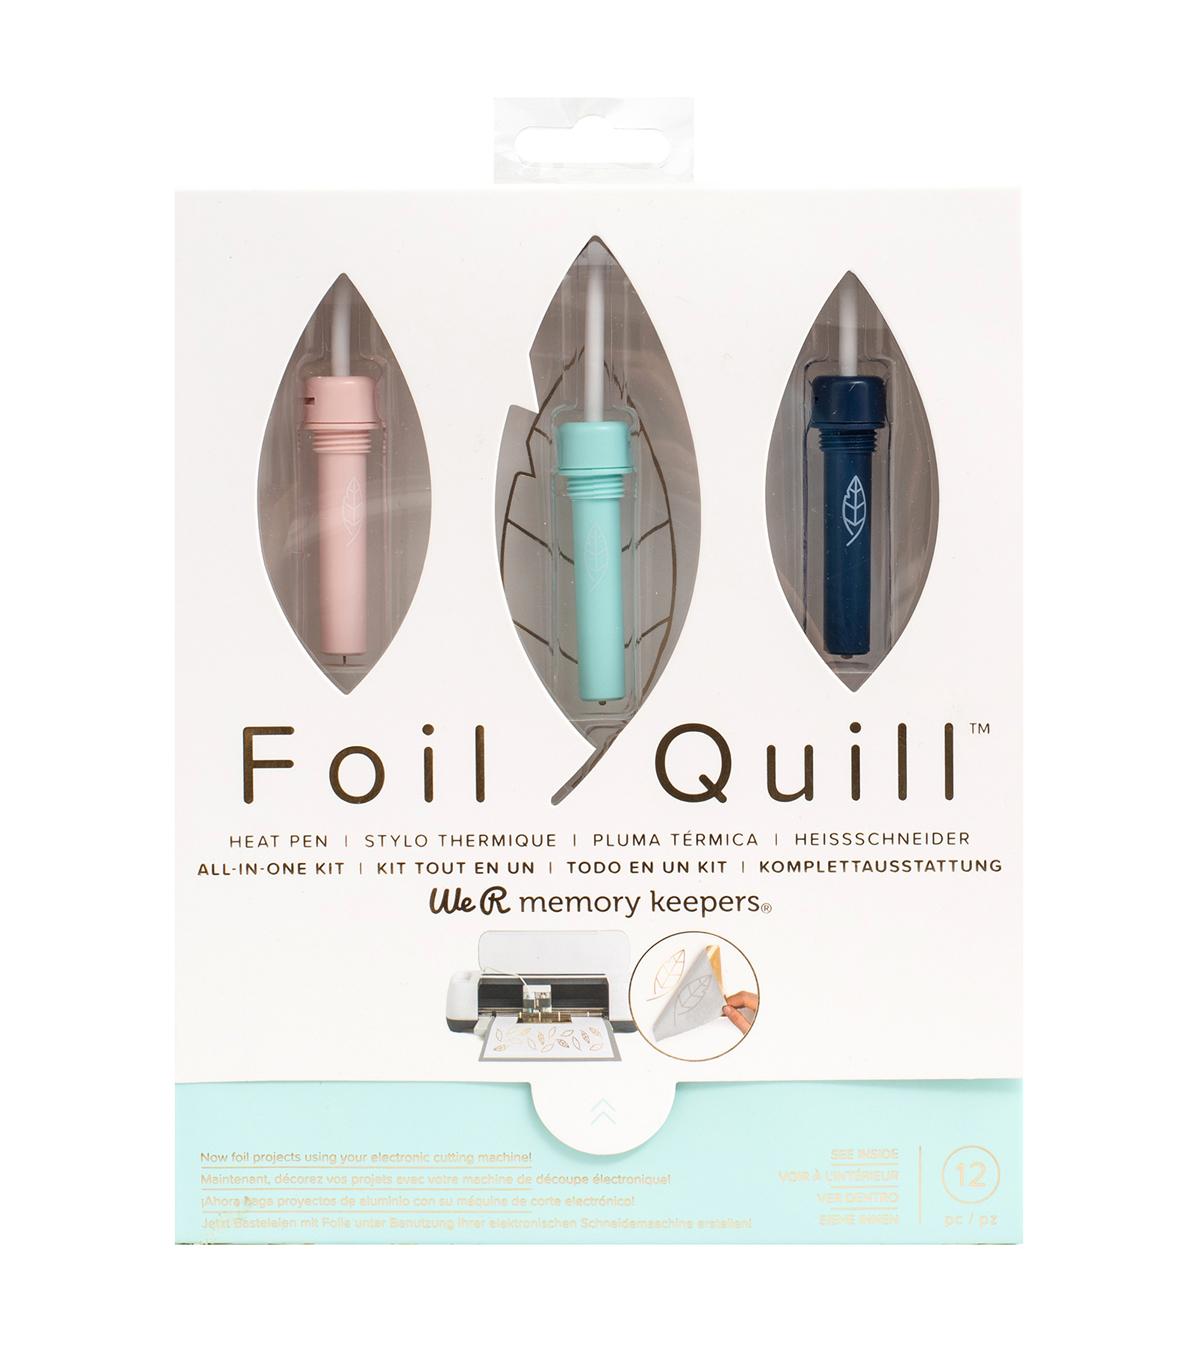 Foil%20Quill%20All%20in%20One%20.jpg